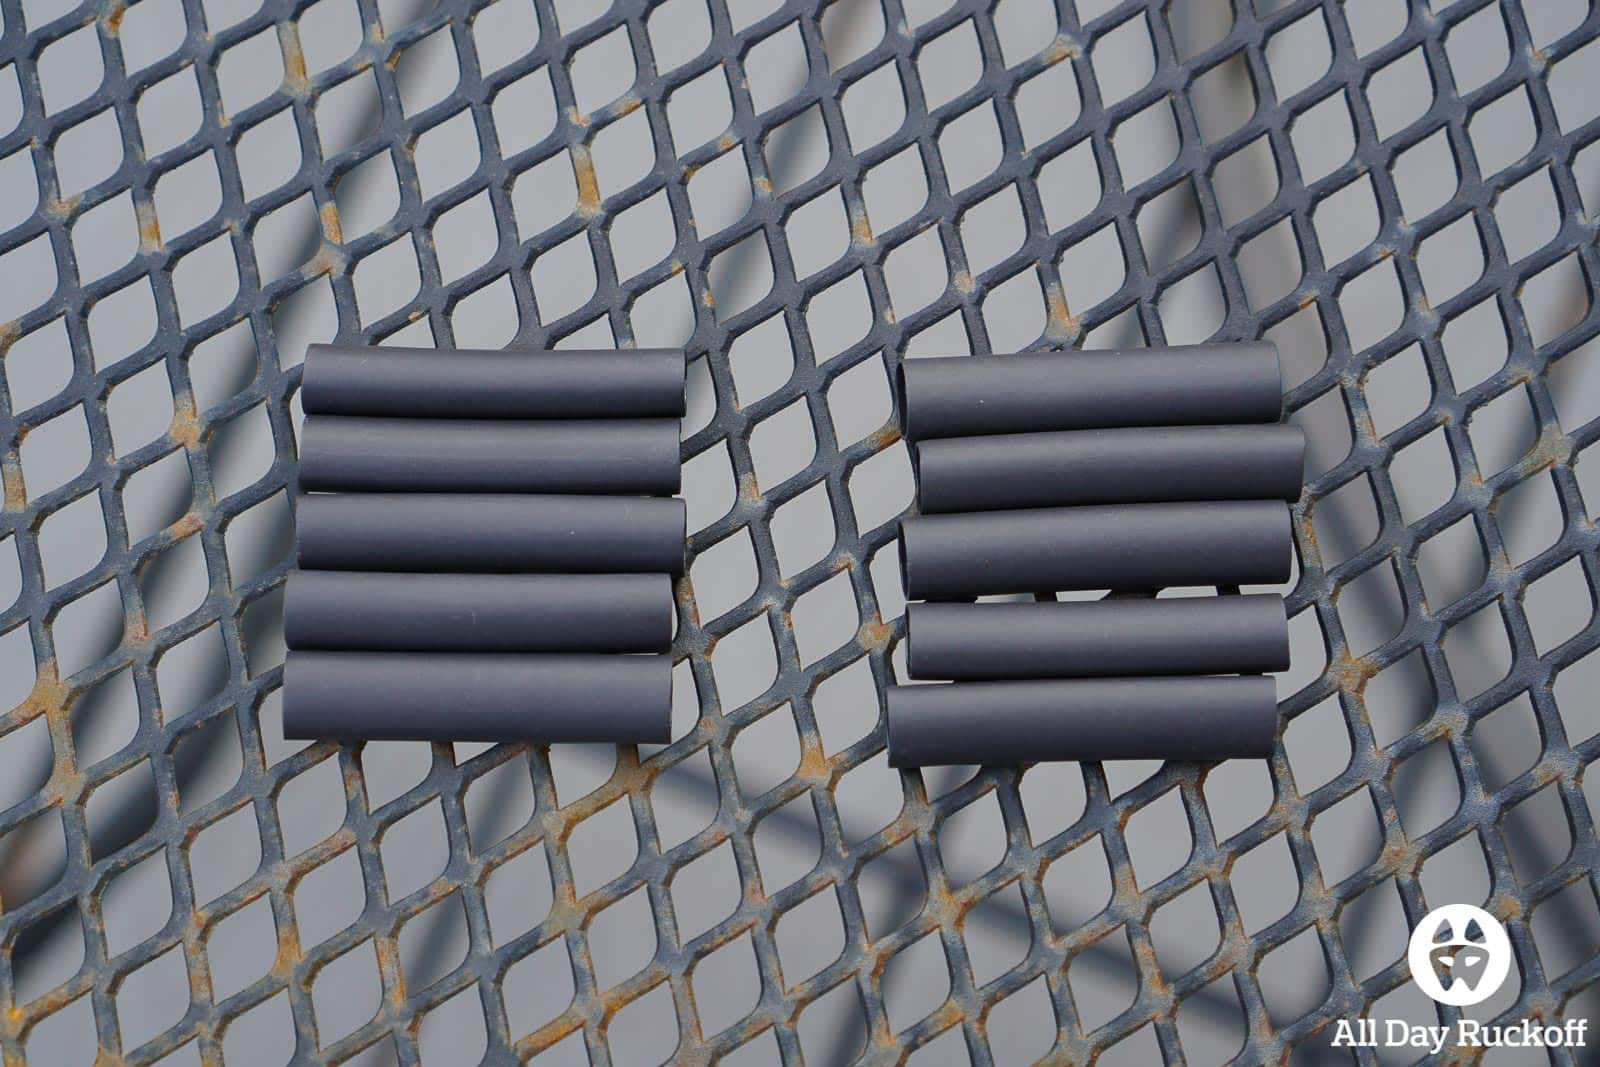 GORUCK Zipper Pull Kit - Heat Shrink